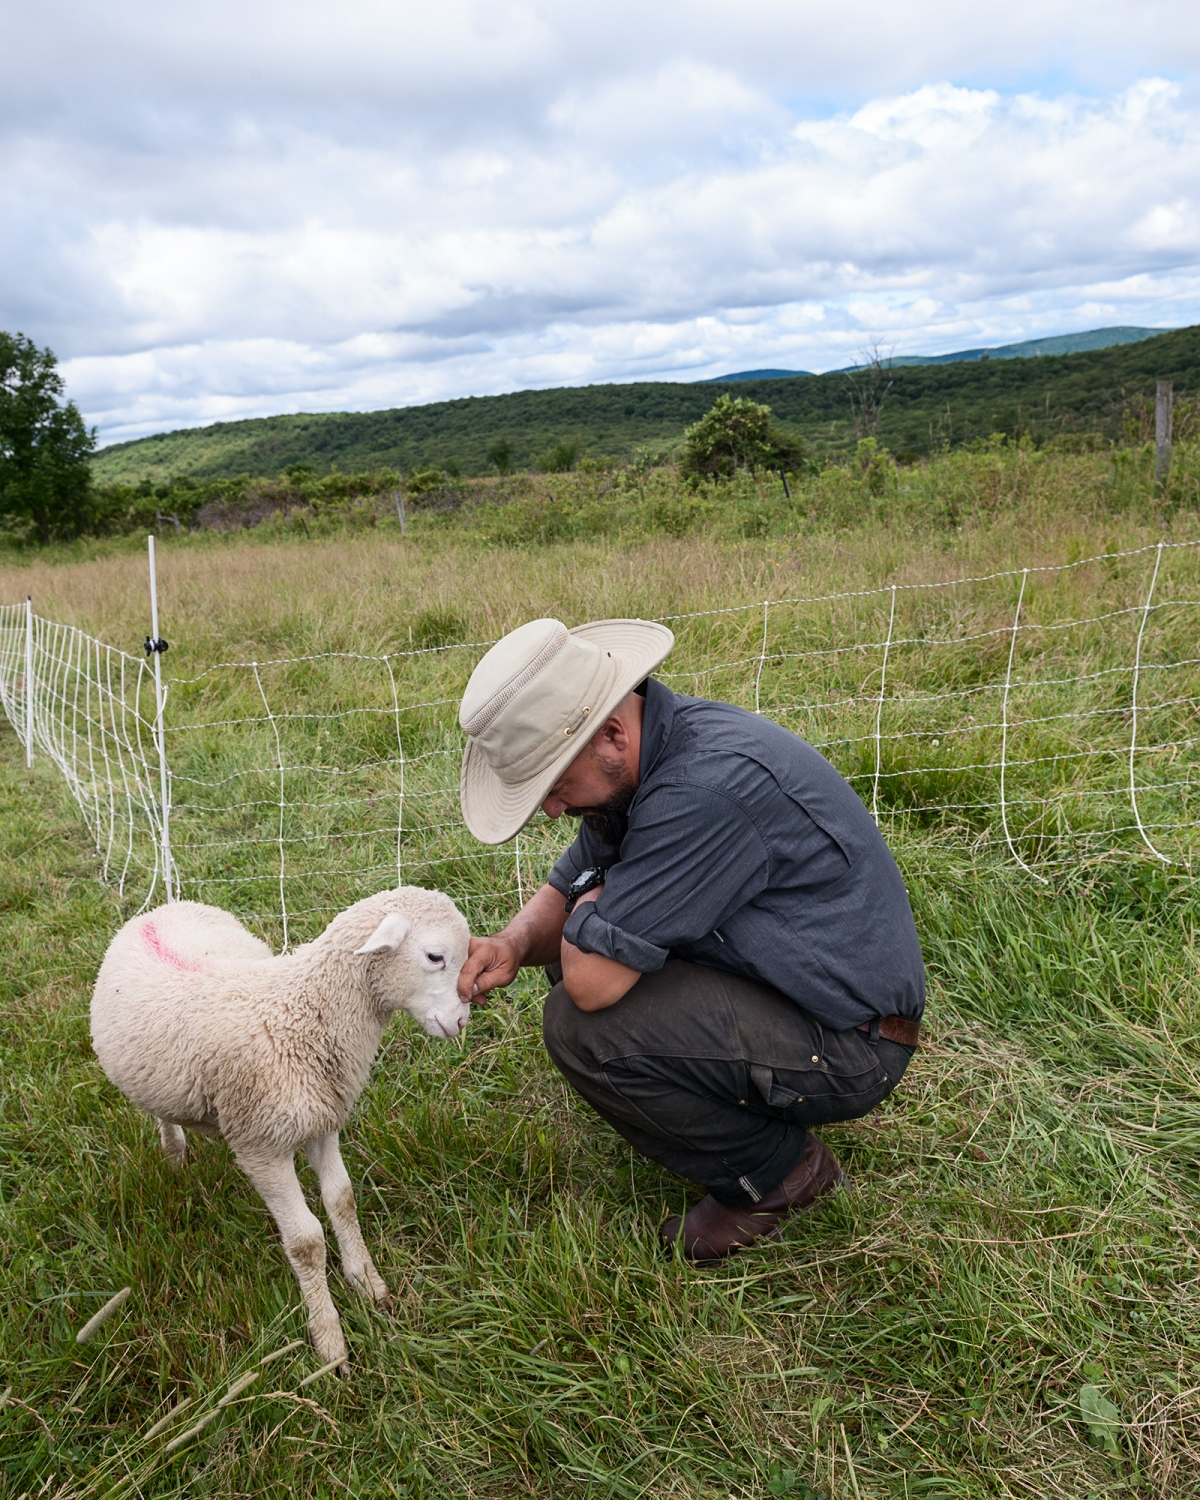 "Farmer James nuzzles his favorite lamb. ""This little fella has the best personality."" I asked him about the challenge of becoming attached to the animals, to which he replied: ""Sometimes it's very hard."""